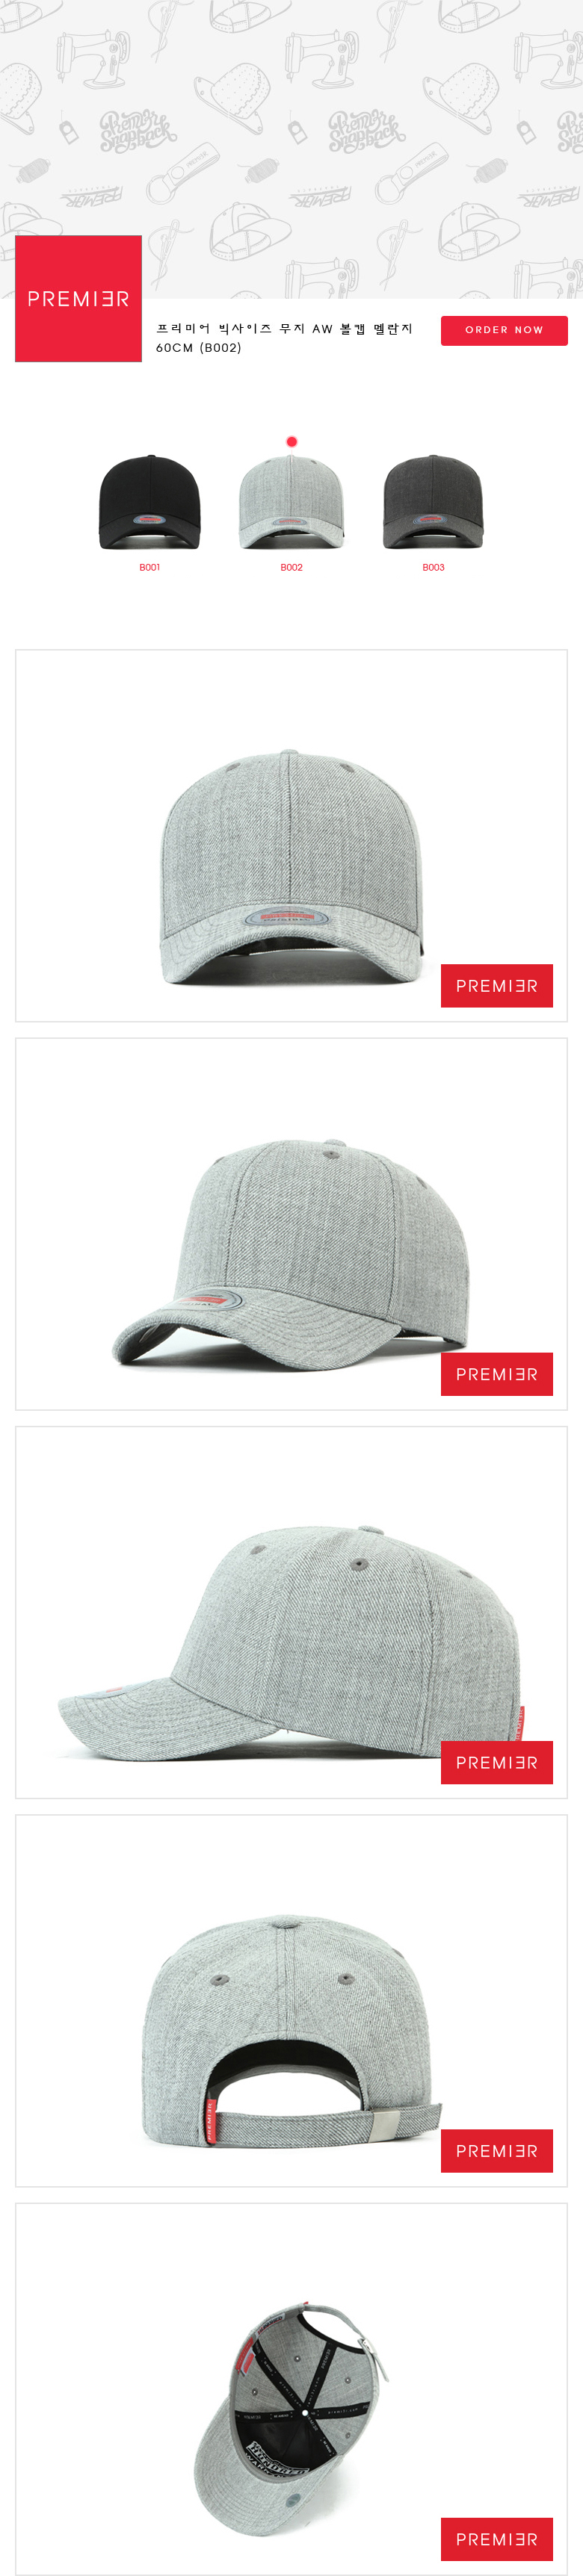 [ PREMIER ] [Premier] BIG One Color AW Ball Cap Melange 60CM (B002)